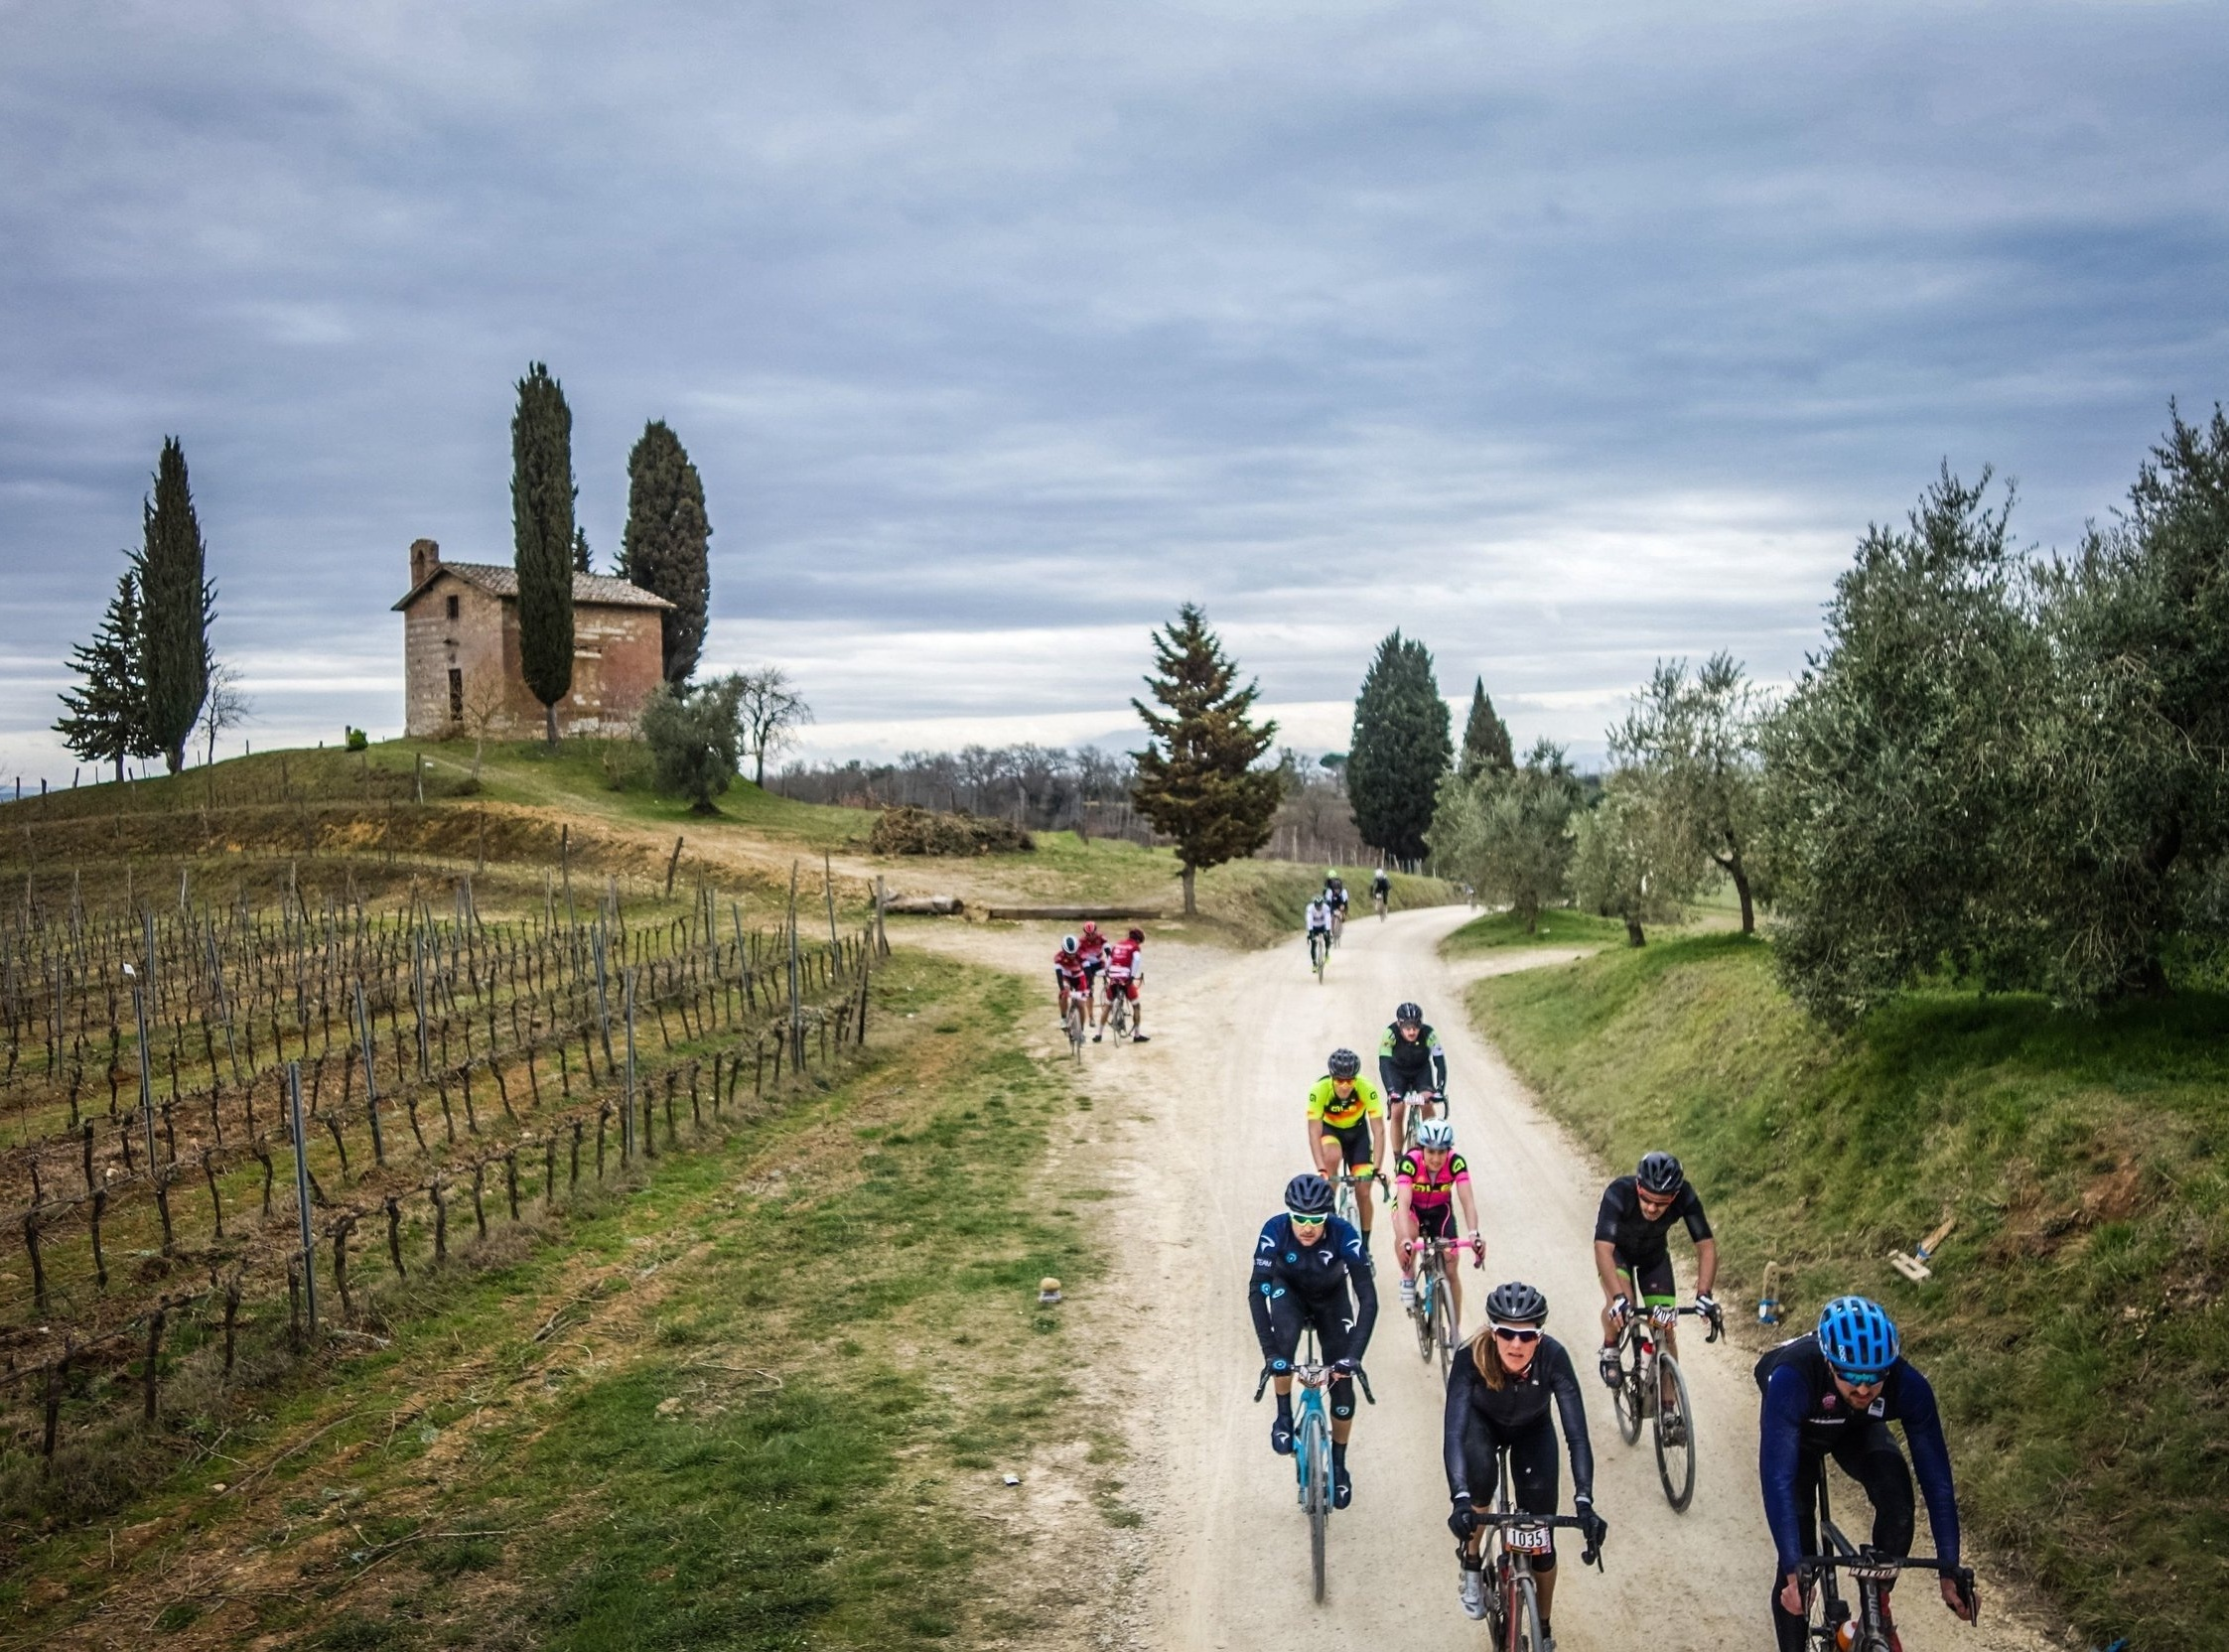 Gran Fondo Strade Bianche - Imagine crisp spring air, the uncertainty of rain or shine, historic Siena packed to the brim with pros and anything but, and fine white dust that brings peace and meaning to only a cyclist.